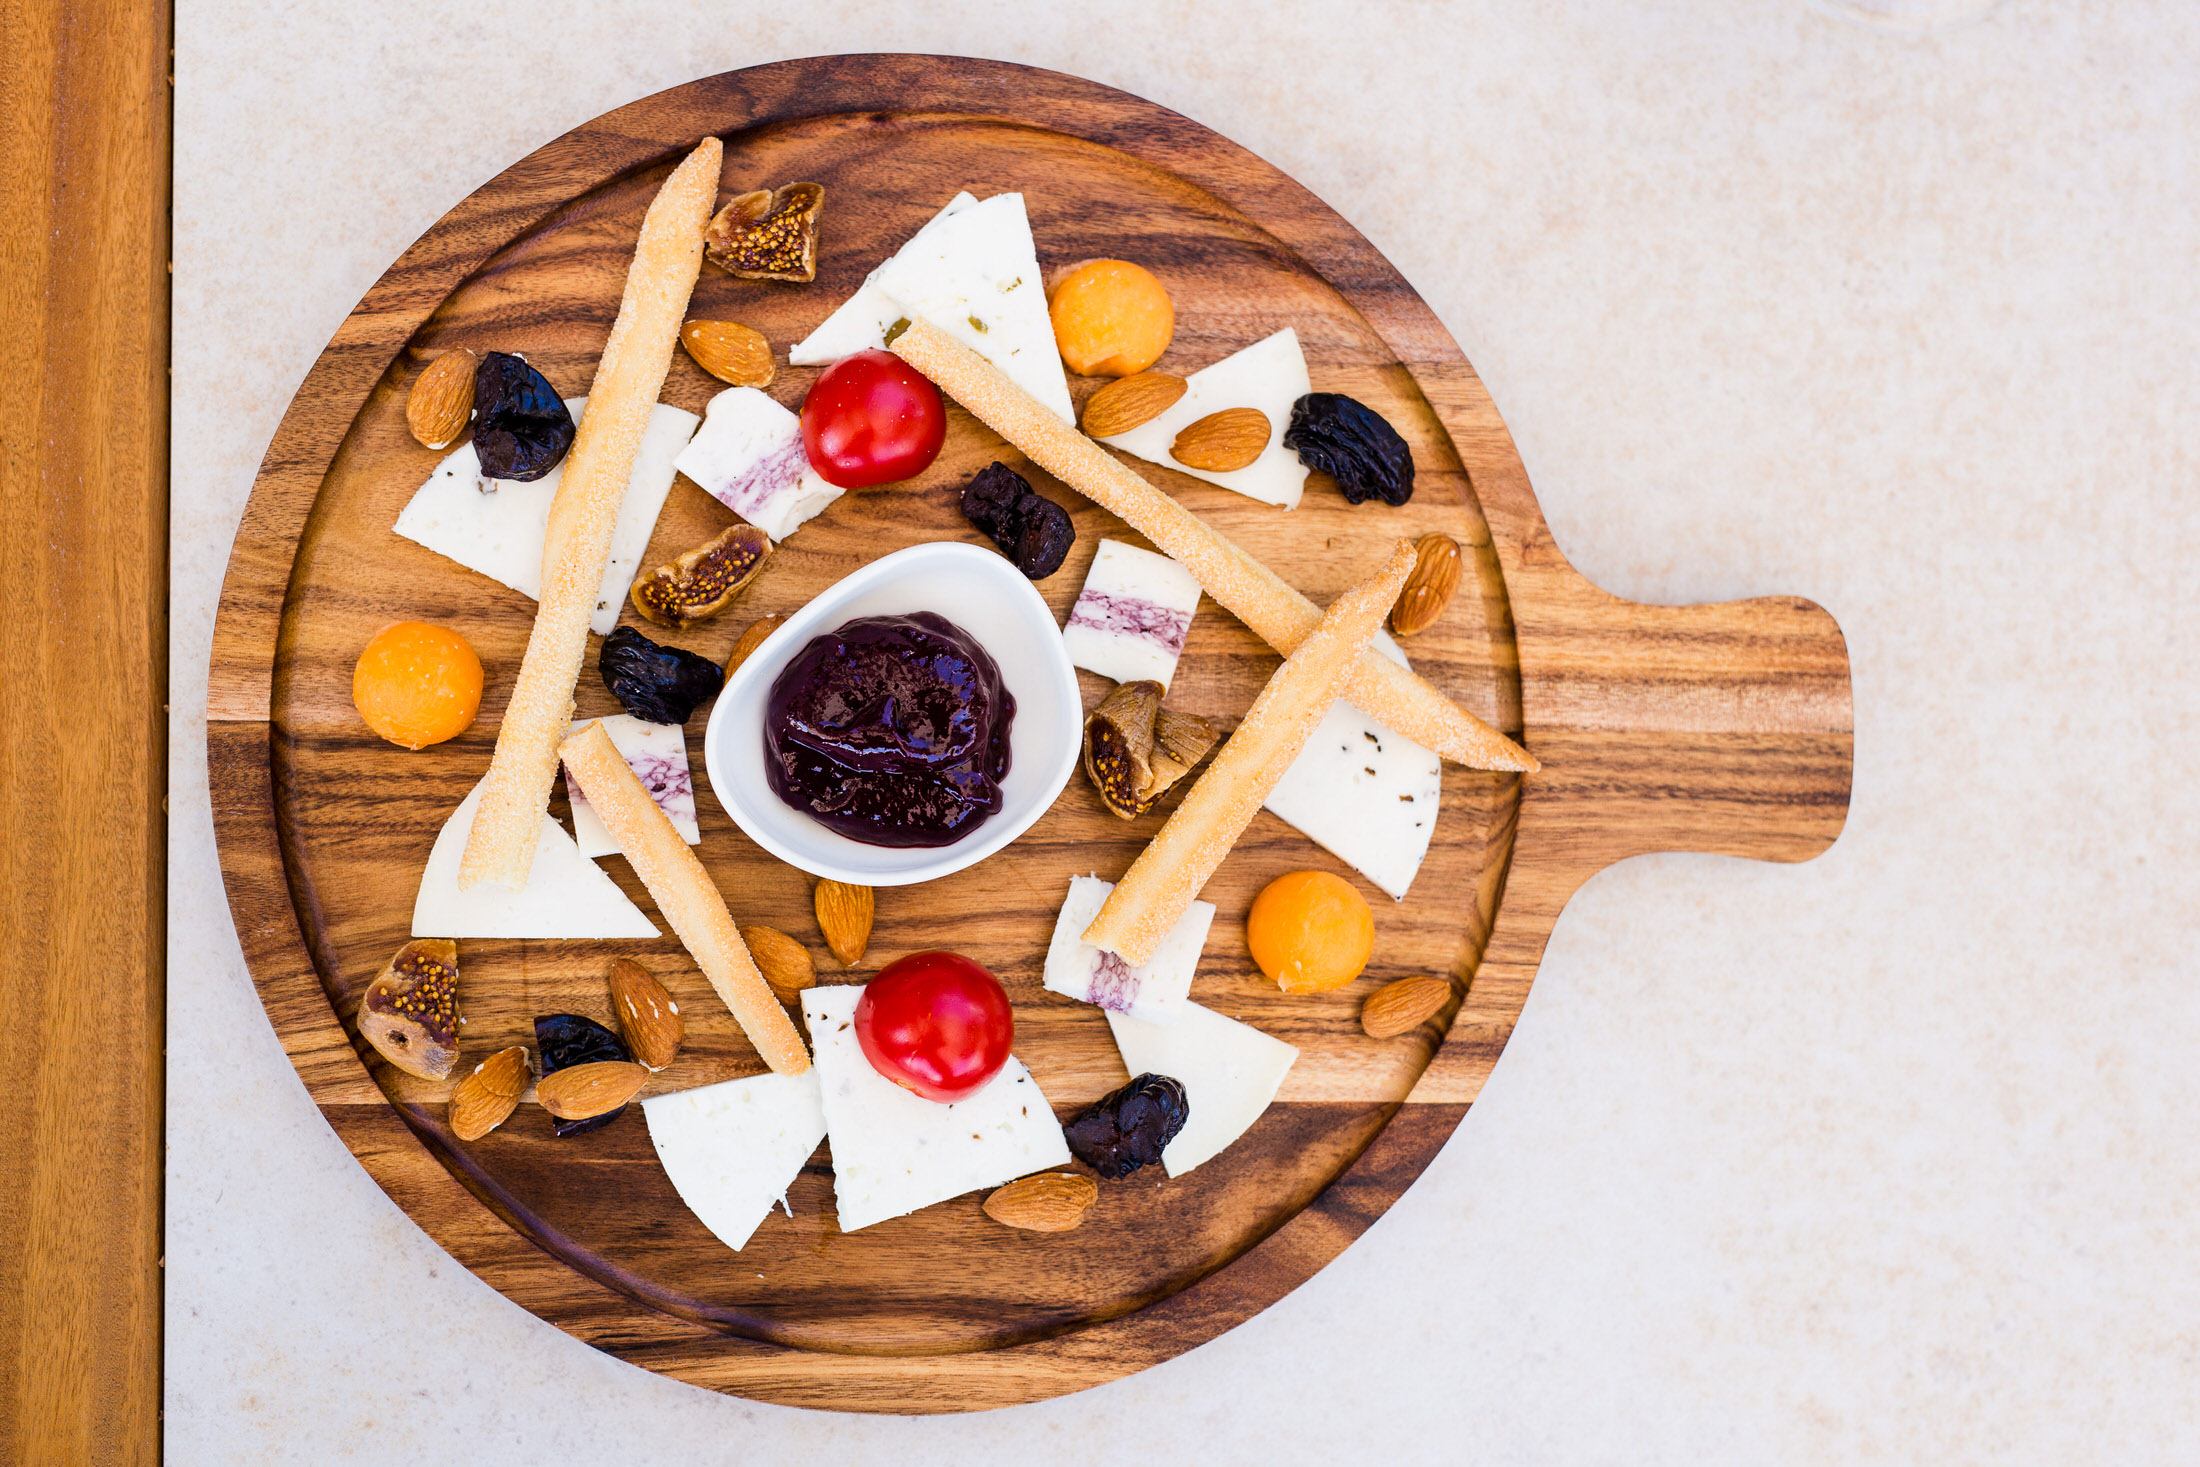 Goat cheese selection -